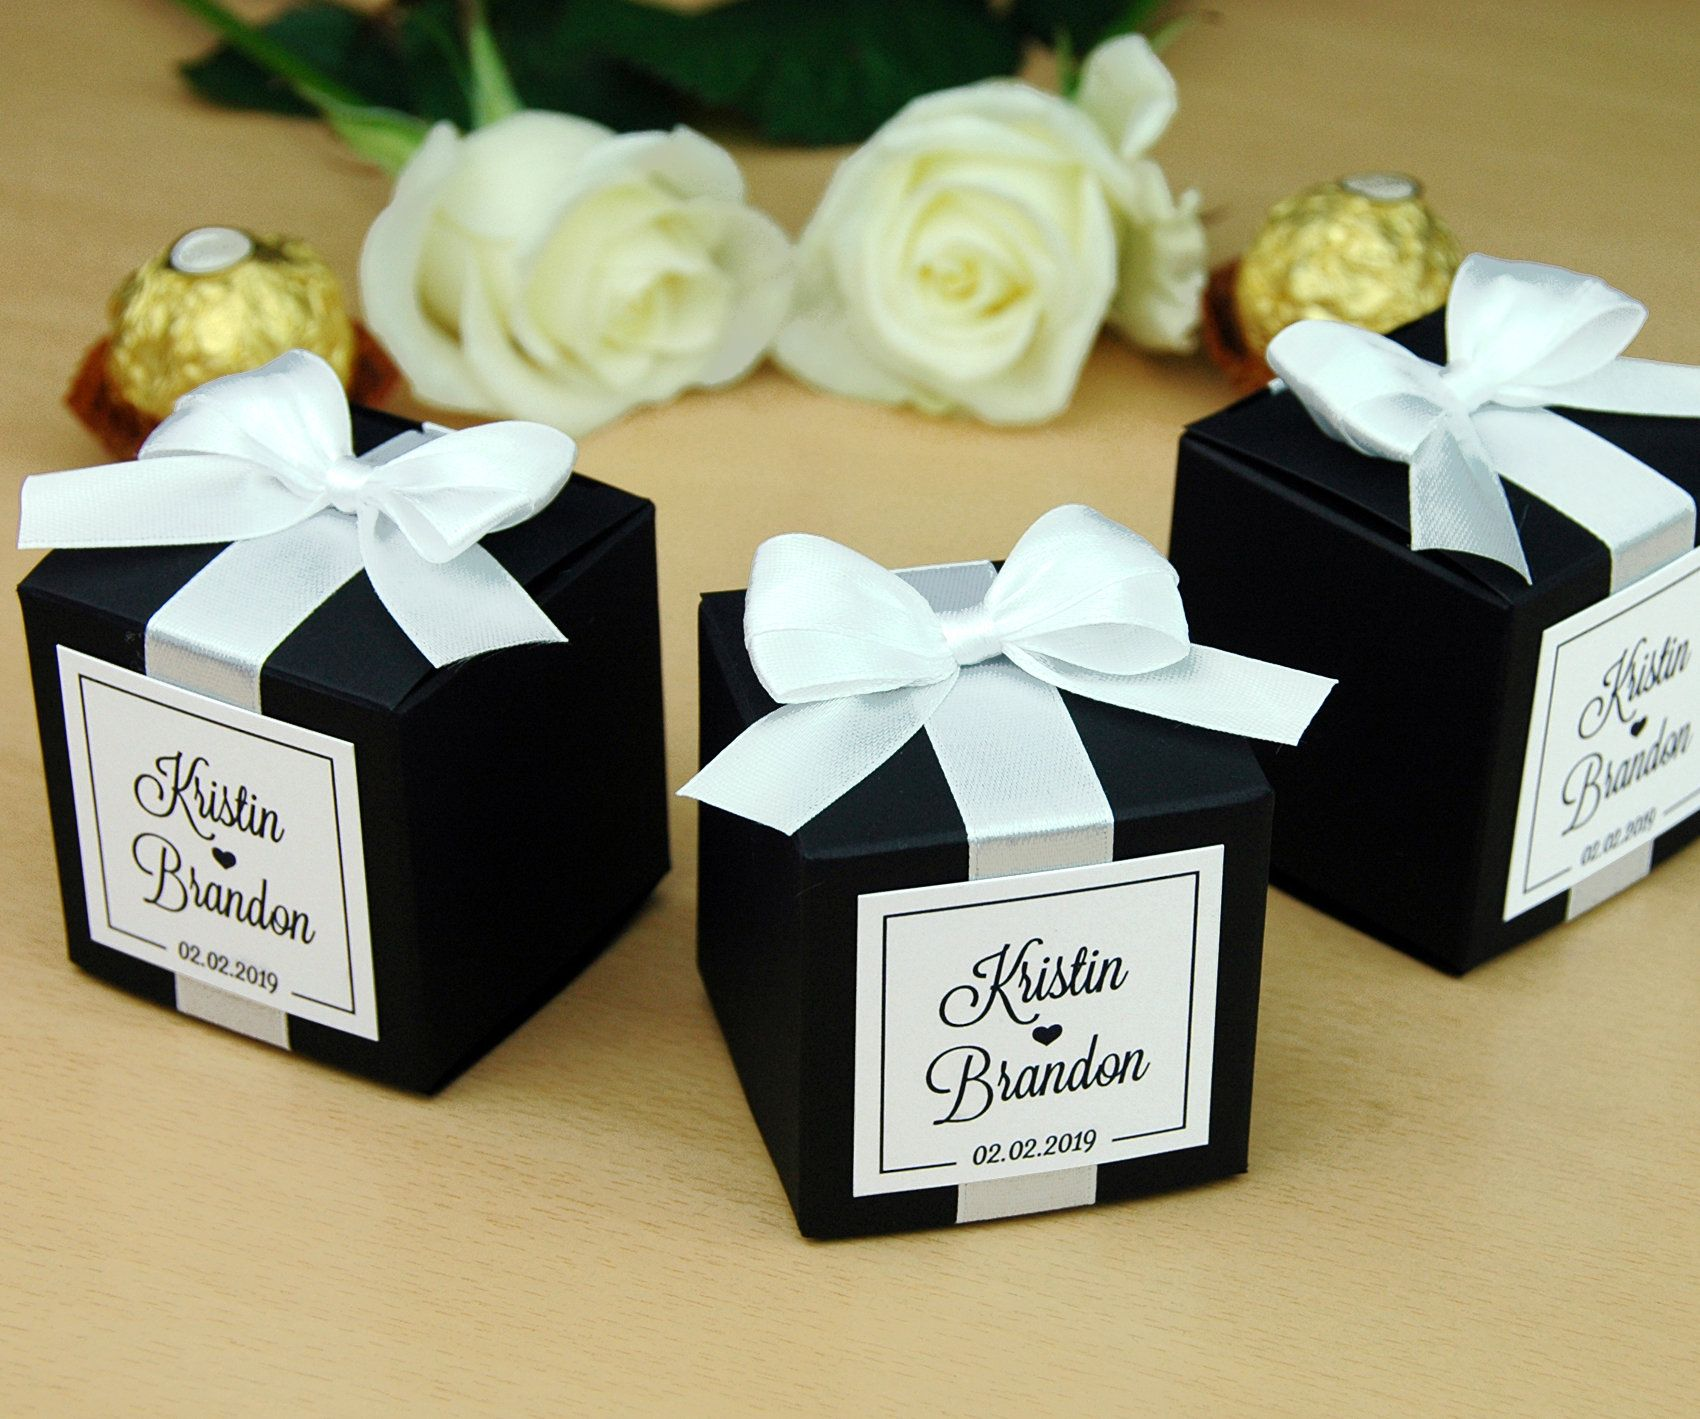 Personalized Wedding Favor Boxes For Guests Elegant Wedding Etsy Personalized Wedding Favor Box Wedding Favor Boxes Personalized Wedding Favors